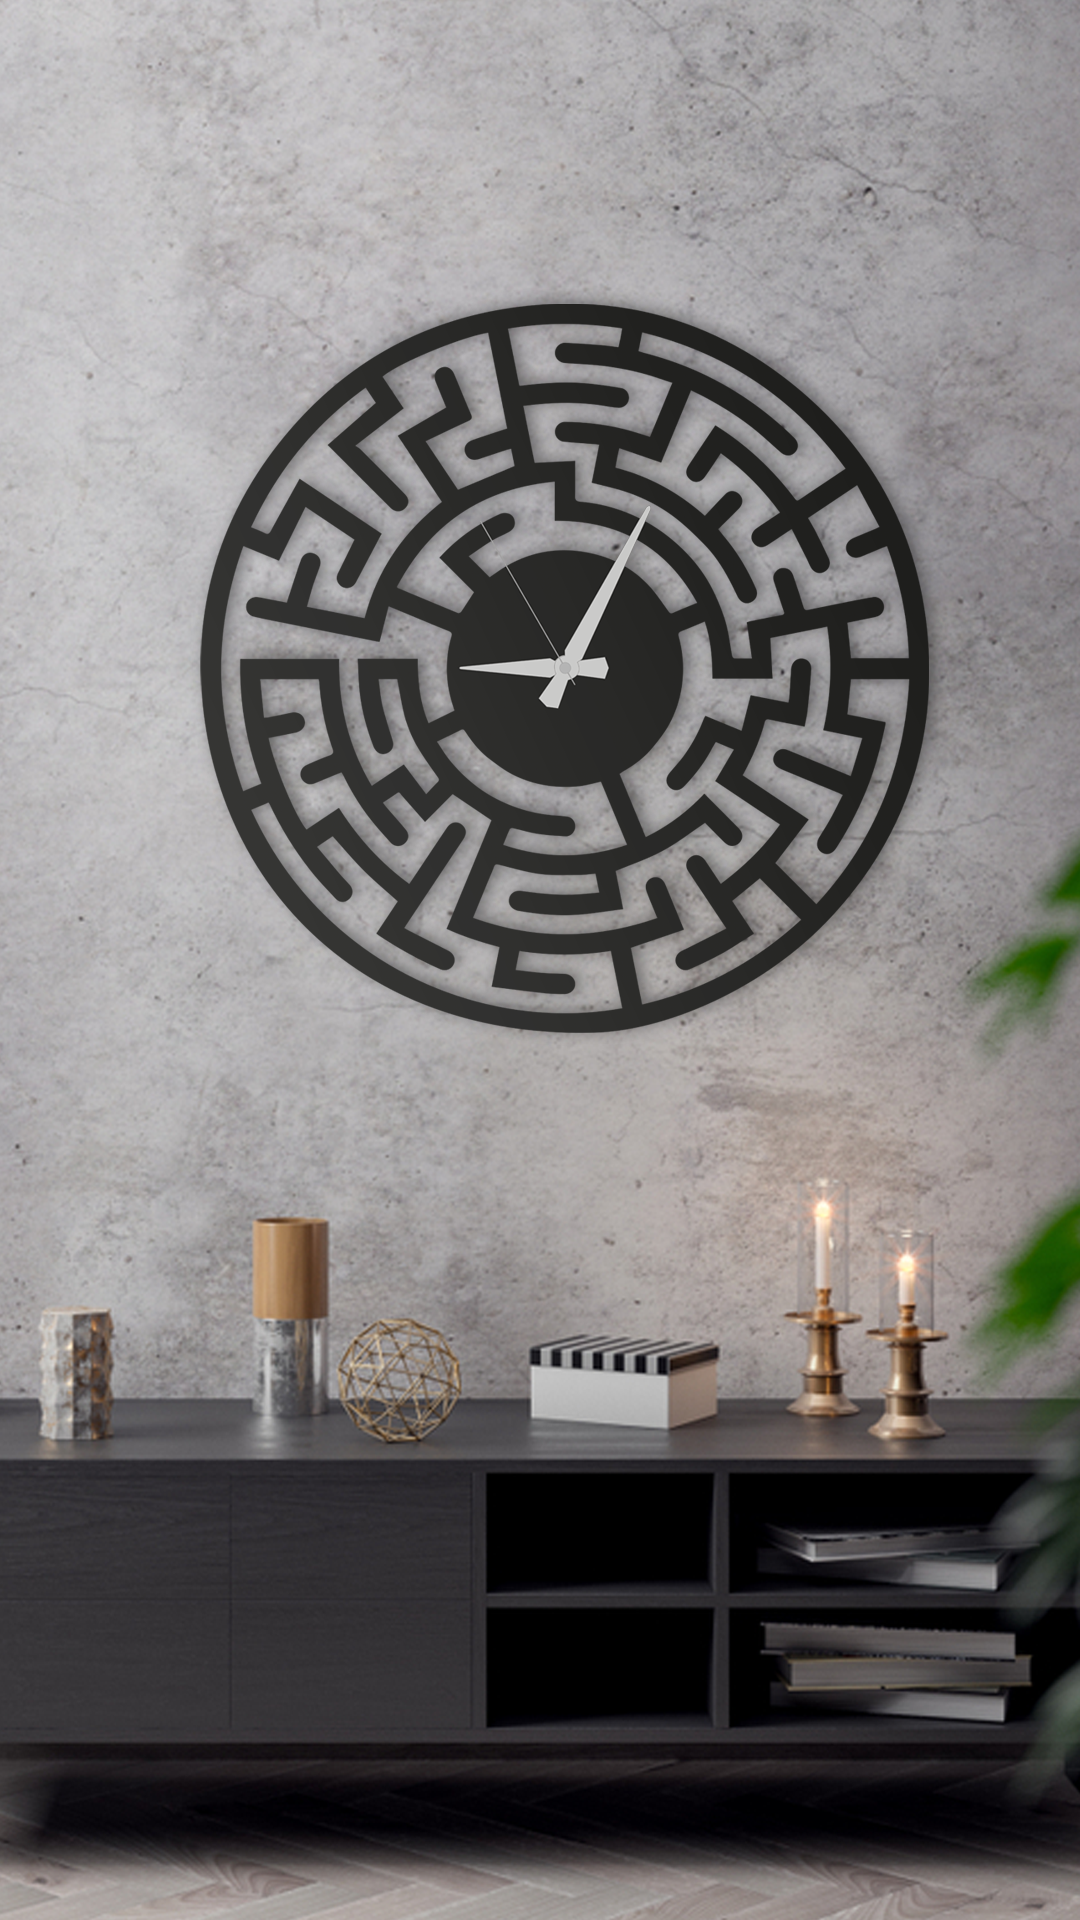 Maze Wall Clock Living Room Clock Large Wall Clock Modern Wall Clock In 2020 Living Room Clocks Rustic Wall Clocks Farmhouse Wall Clocks